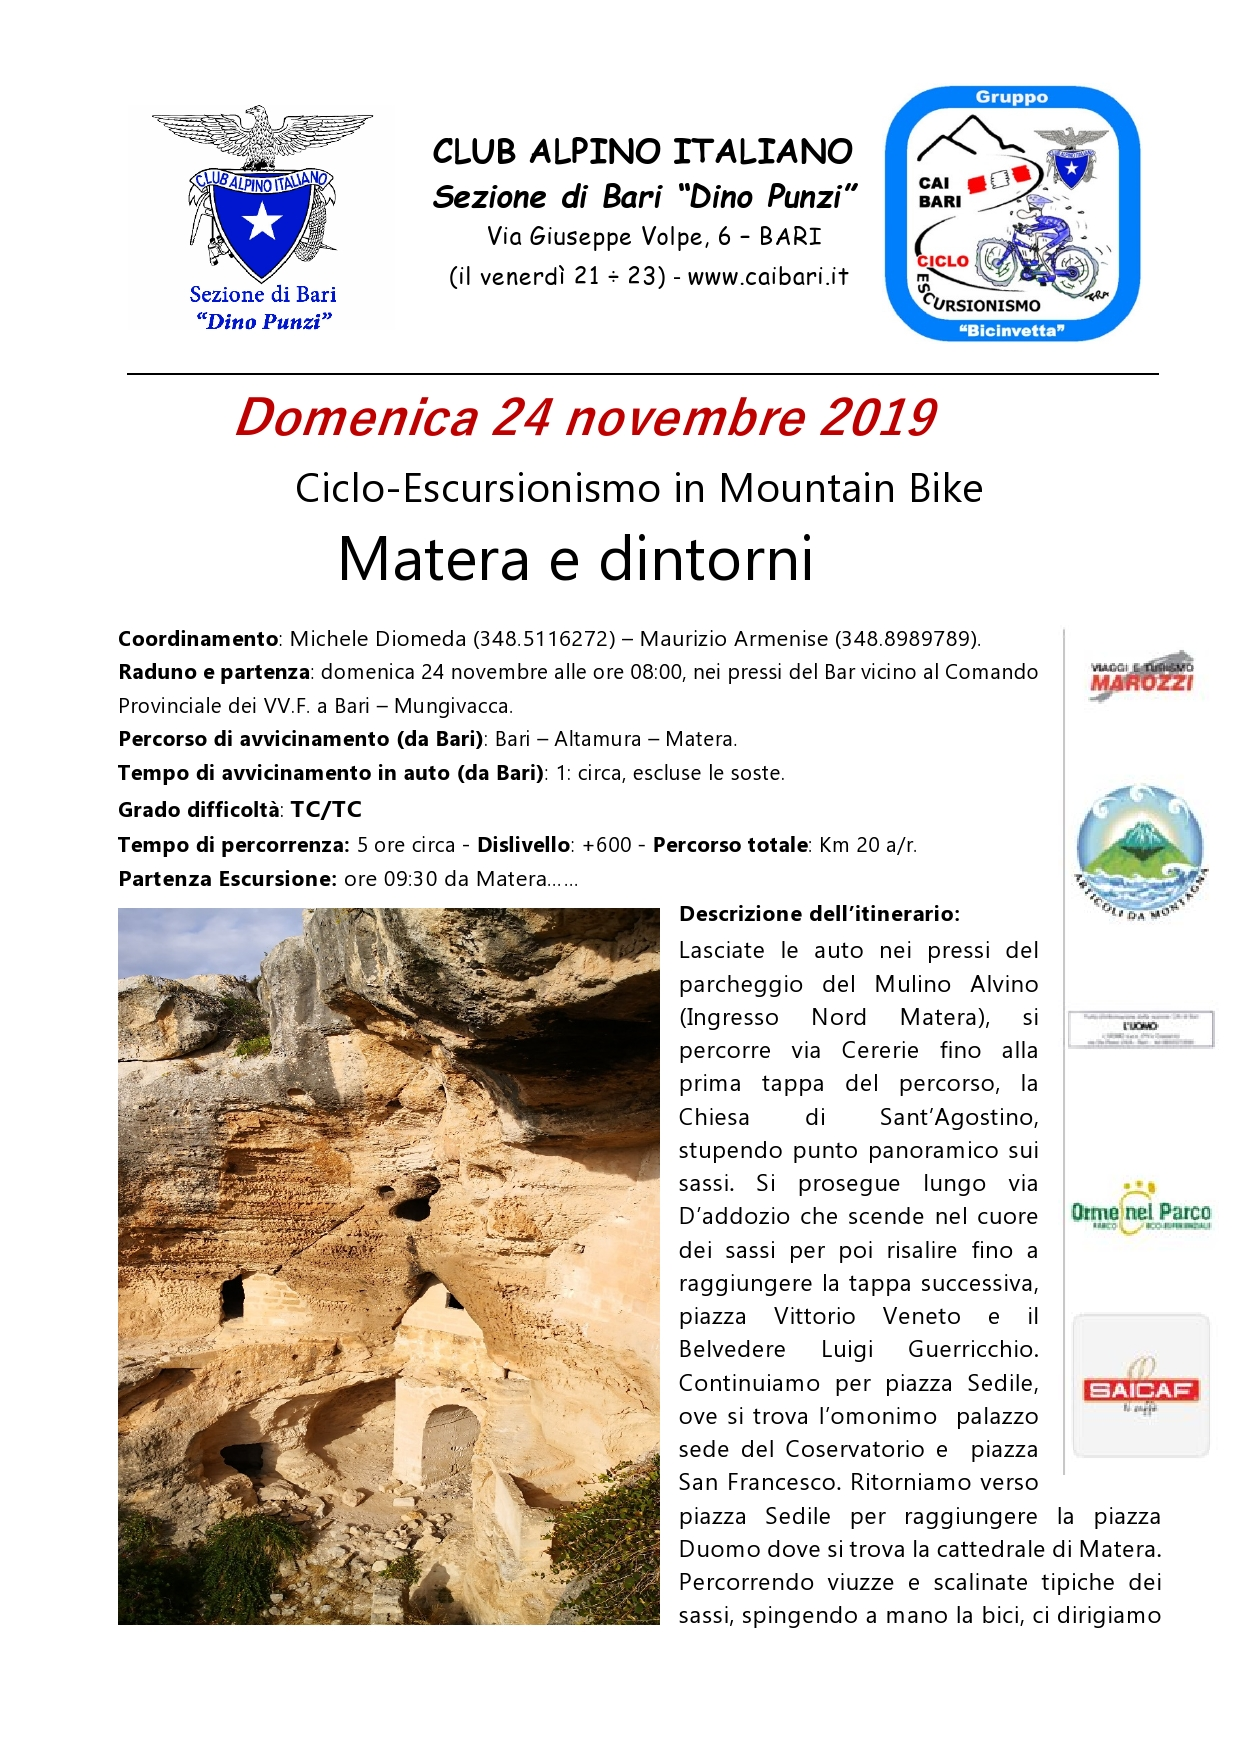 Ciclo-Escursionismo in Mountain Bike  Matera e dintorni